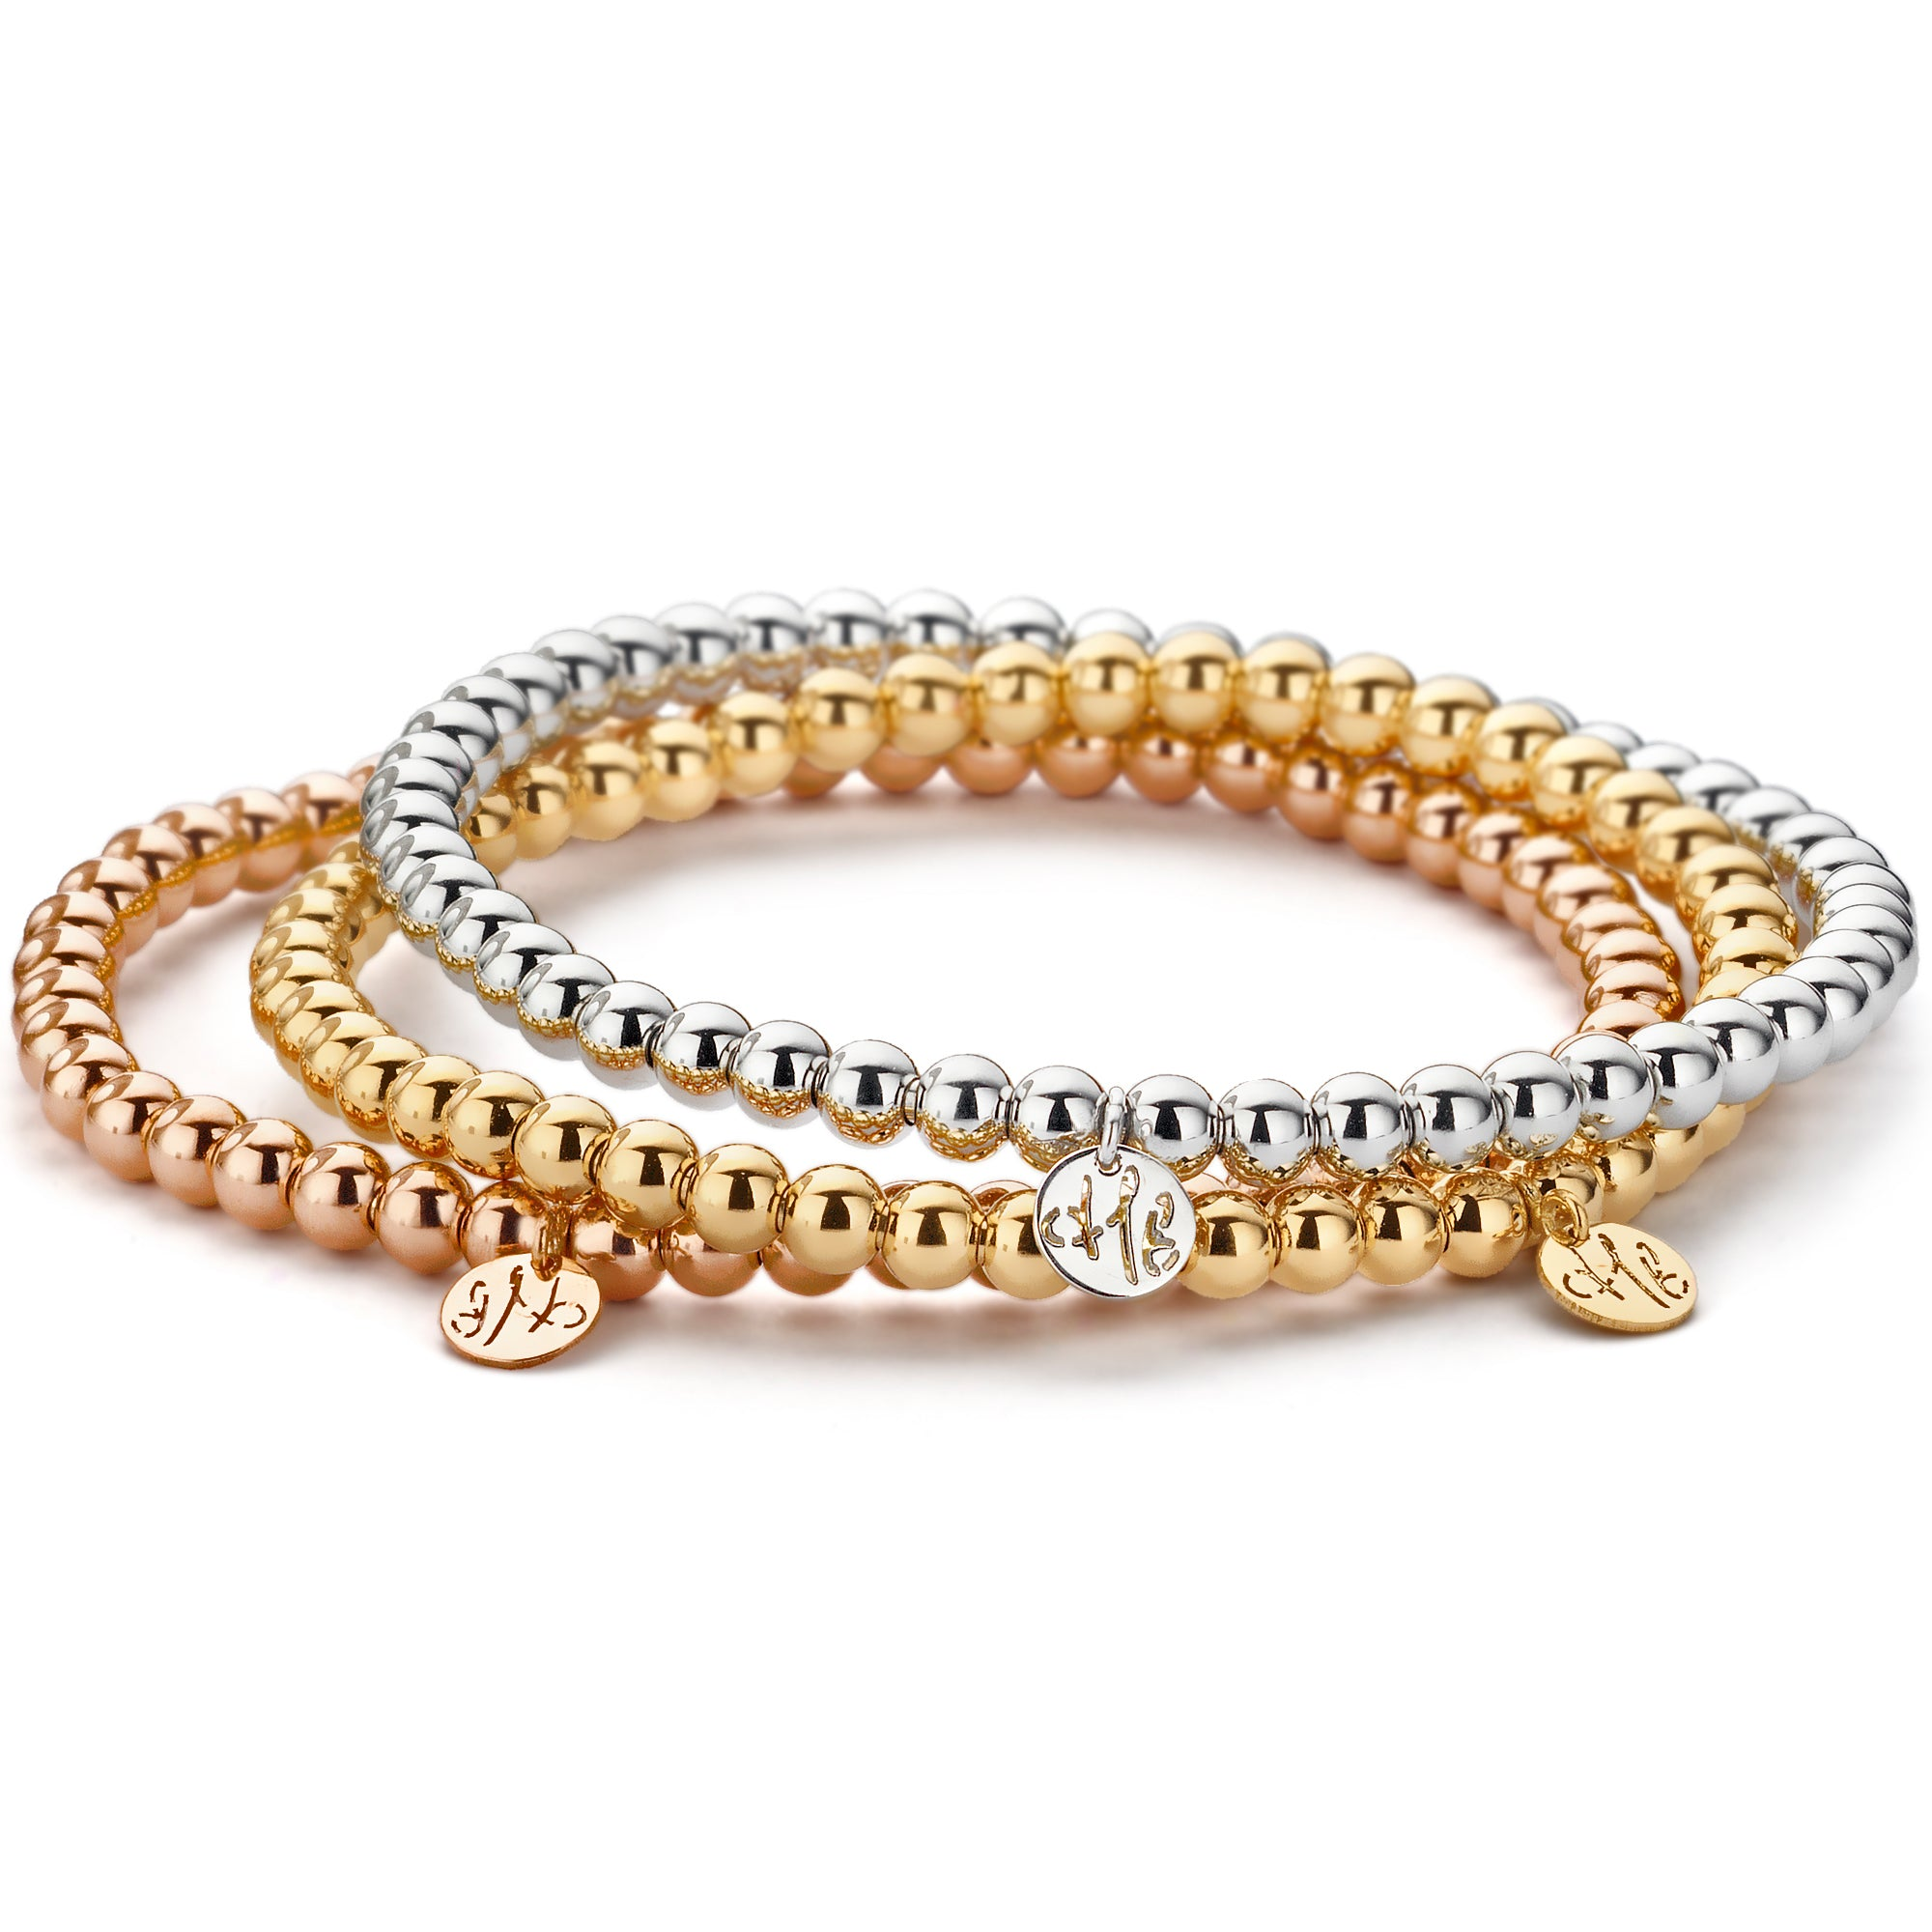 Hulchi Belluni Plain 18K Rose Gold Stretch Stackable Bracelet 20341M-R